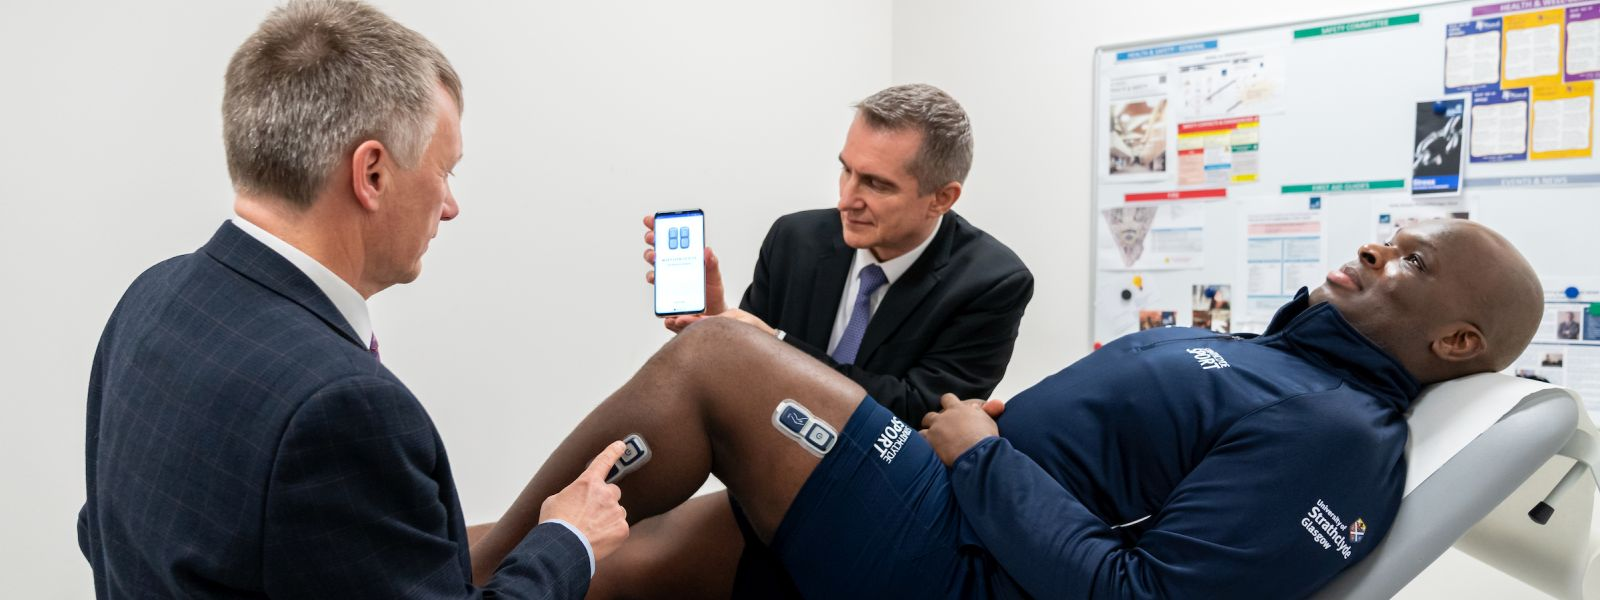 Ivan McKee, MInister for Trade, Investment and Innovation and Roman Bensen, CEO of EnMovi, demonstrate EnMovi technology on fitness instructor Jonathan Idun.